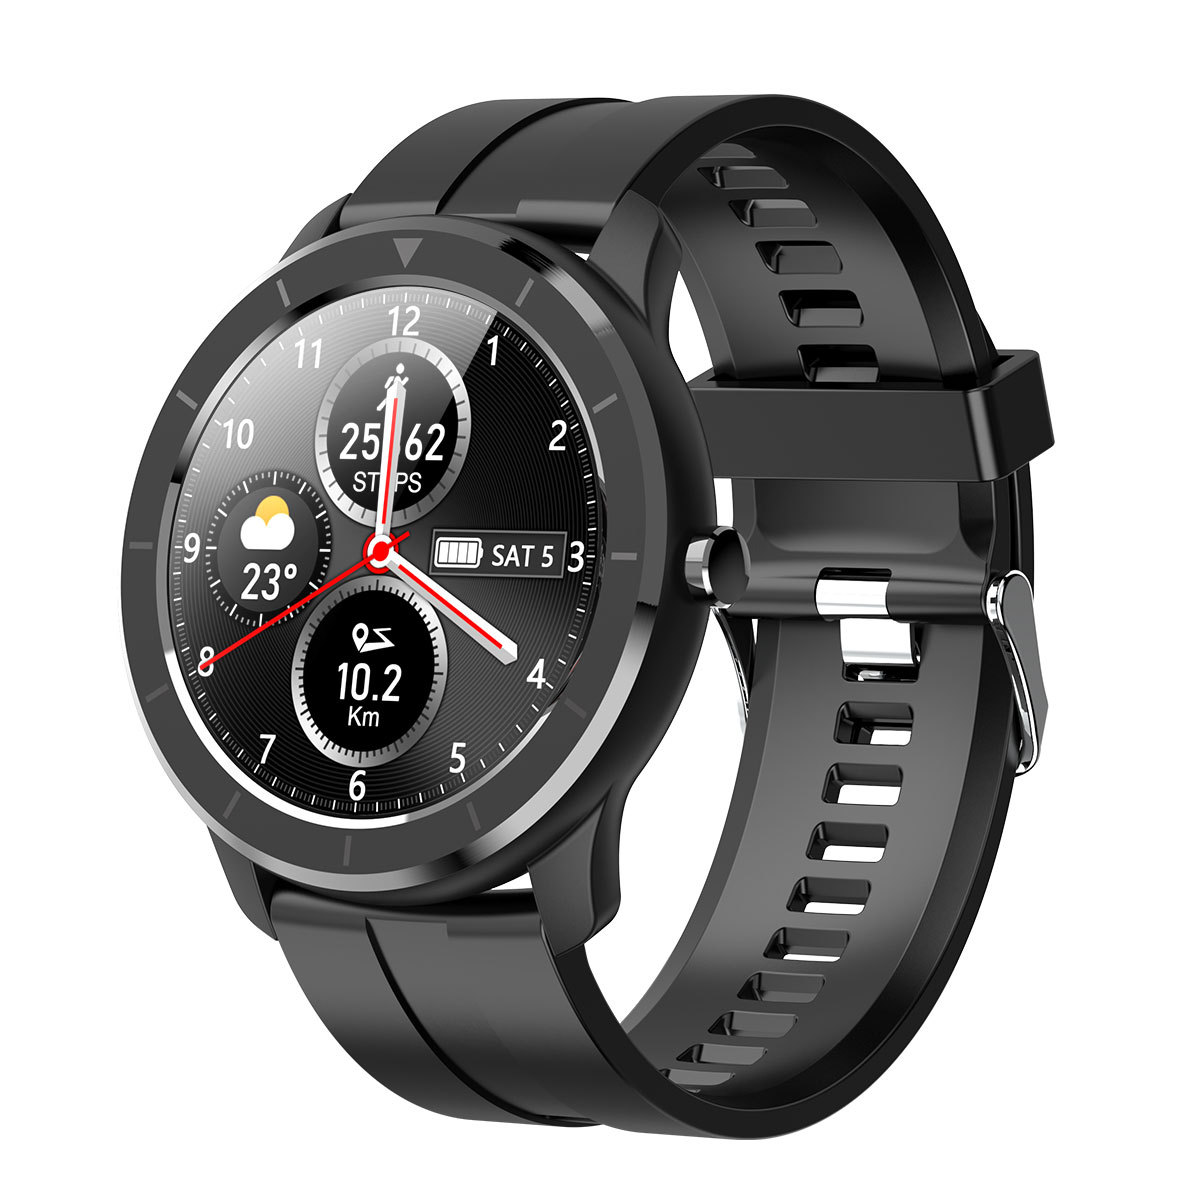 The new T6 smart watch WeChat message reminder heart rate sleep monitoring weather forecast multifun